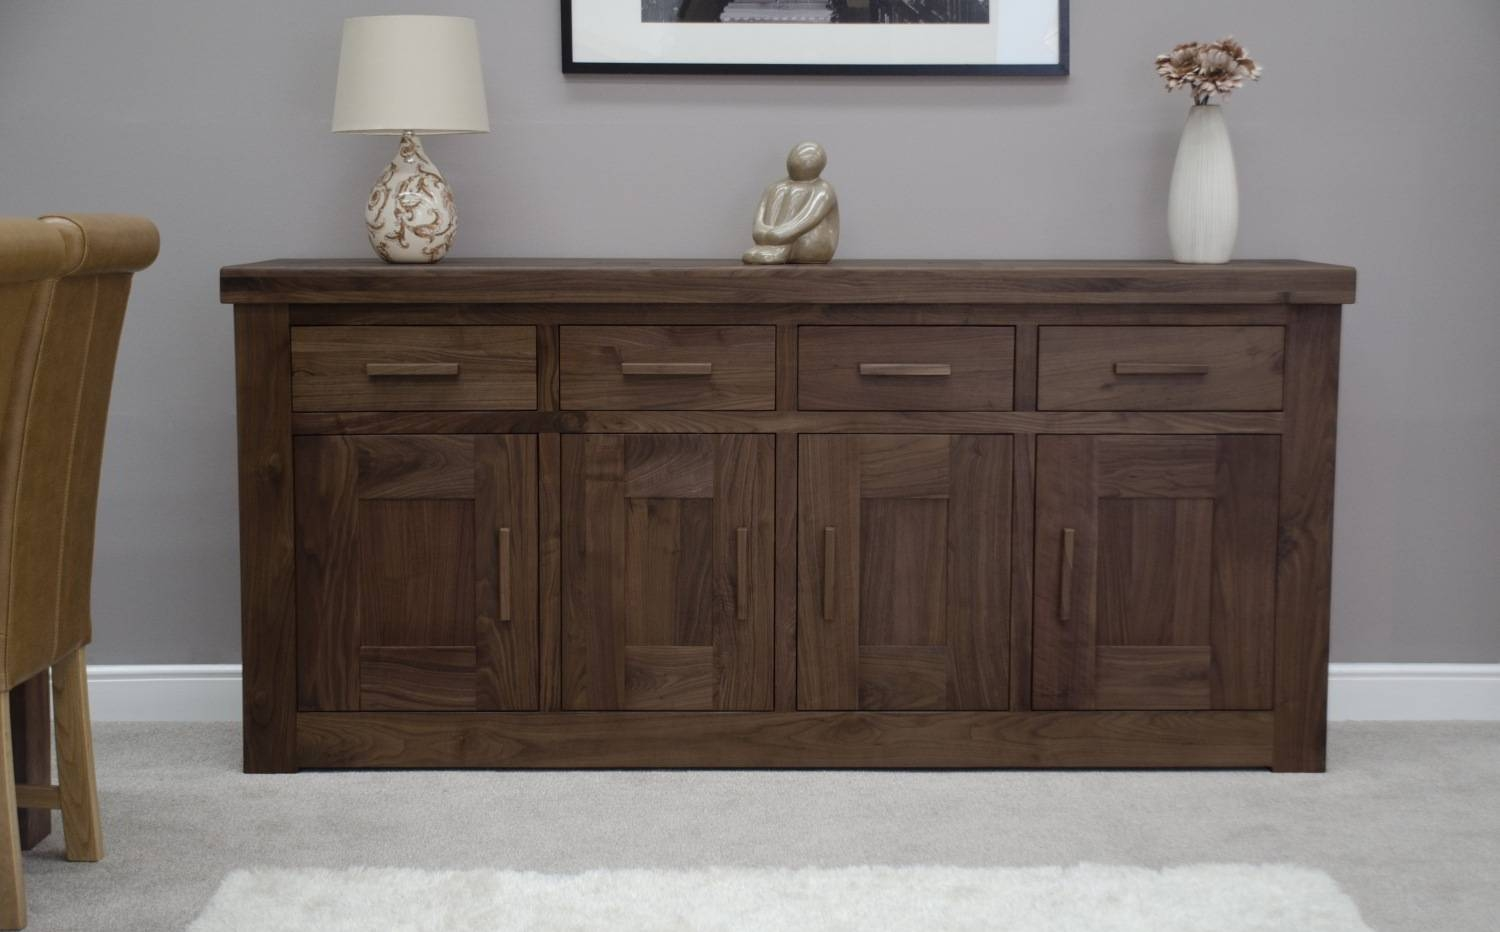 Popular Photo of Dining Room With Sideboards